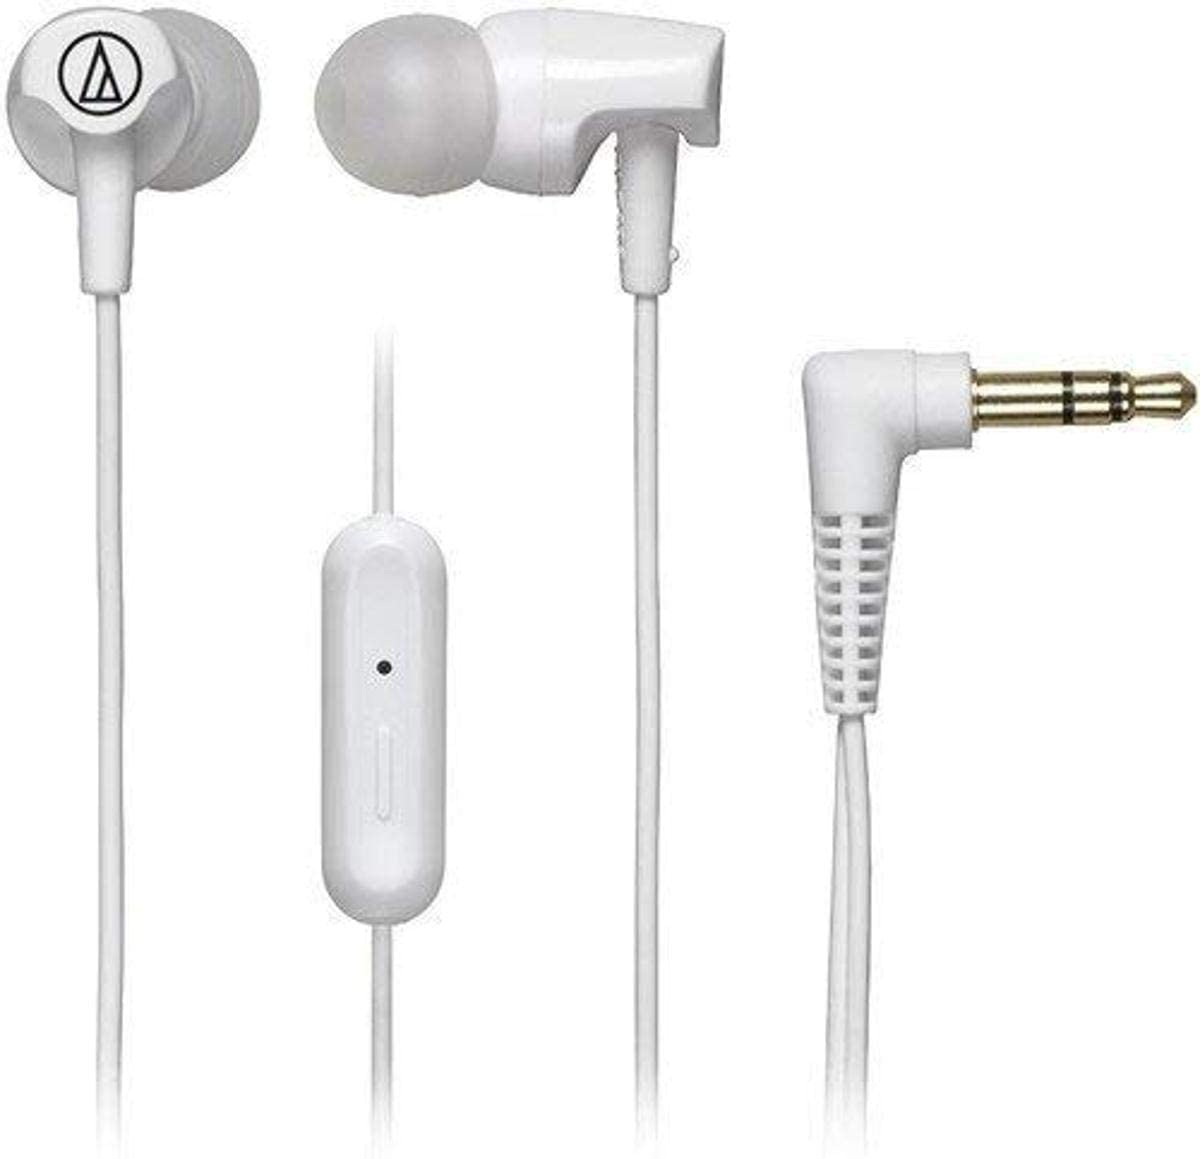 Audio-Technica ATH-CLR100is